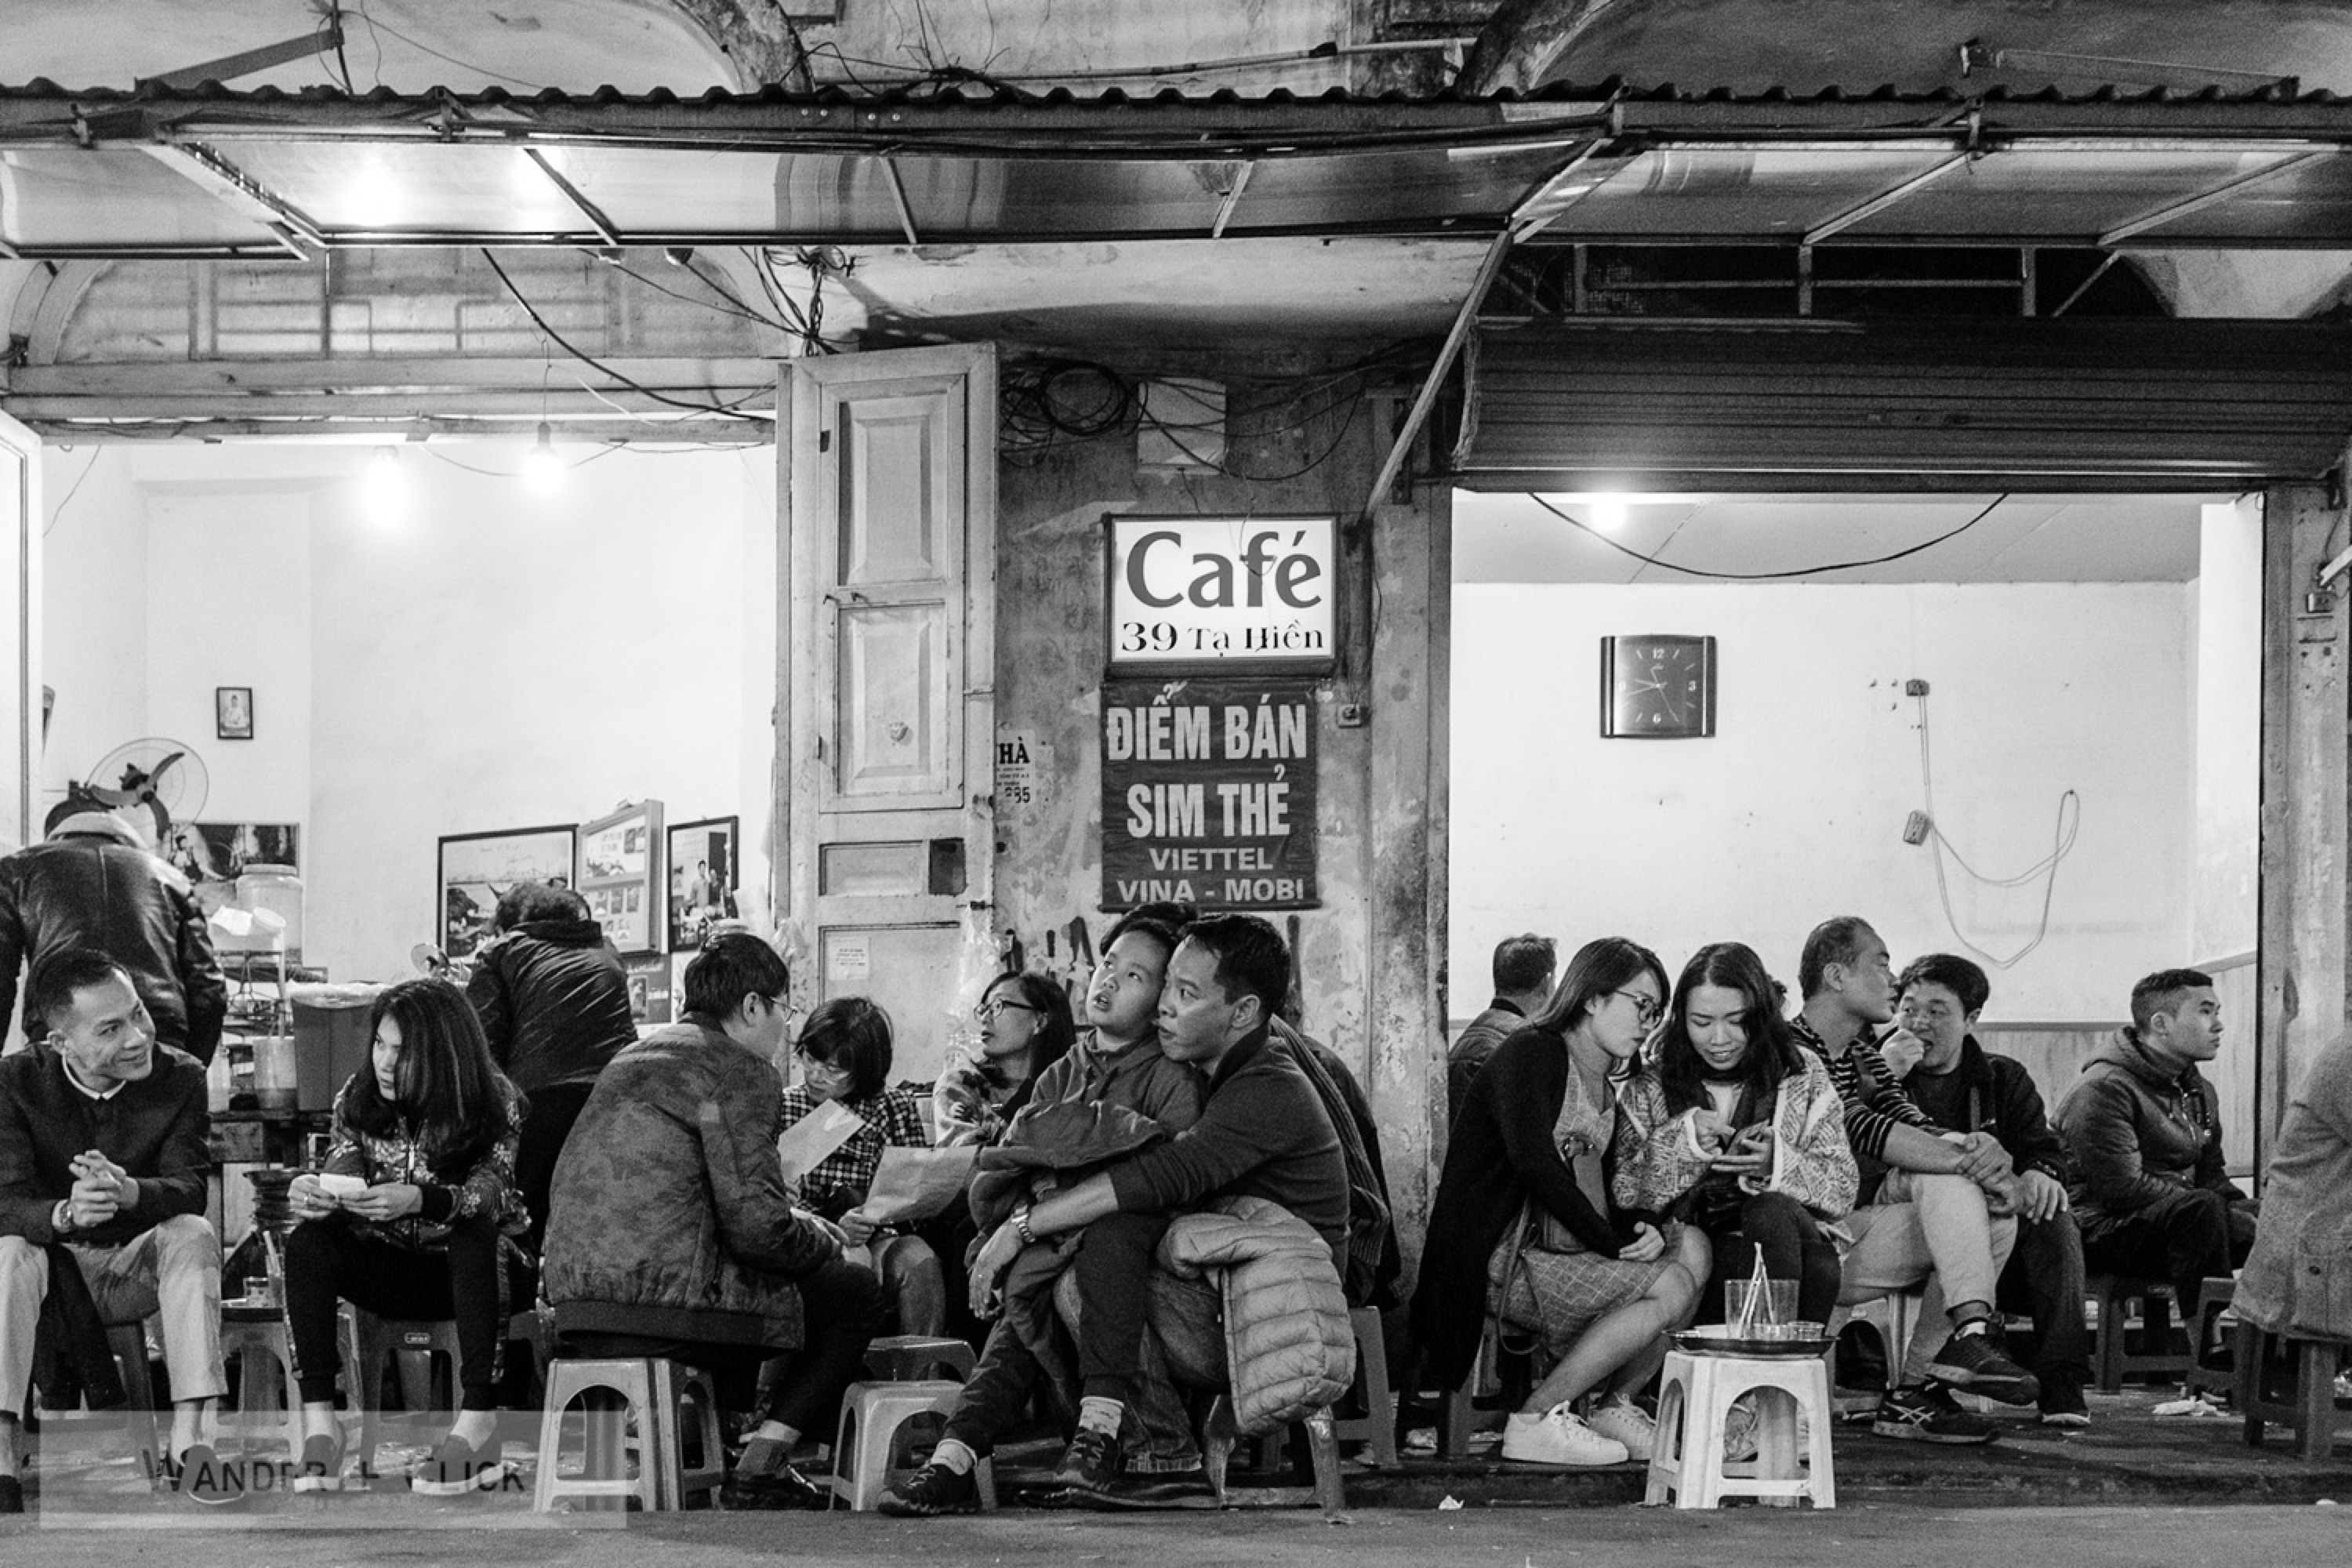 Cafe crowd